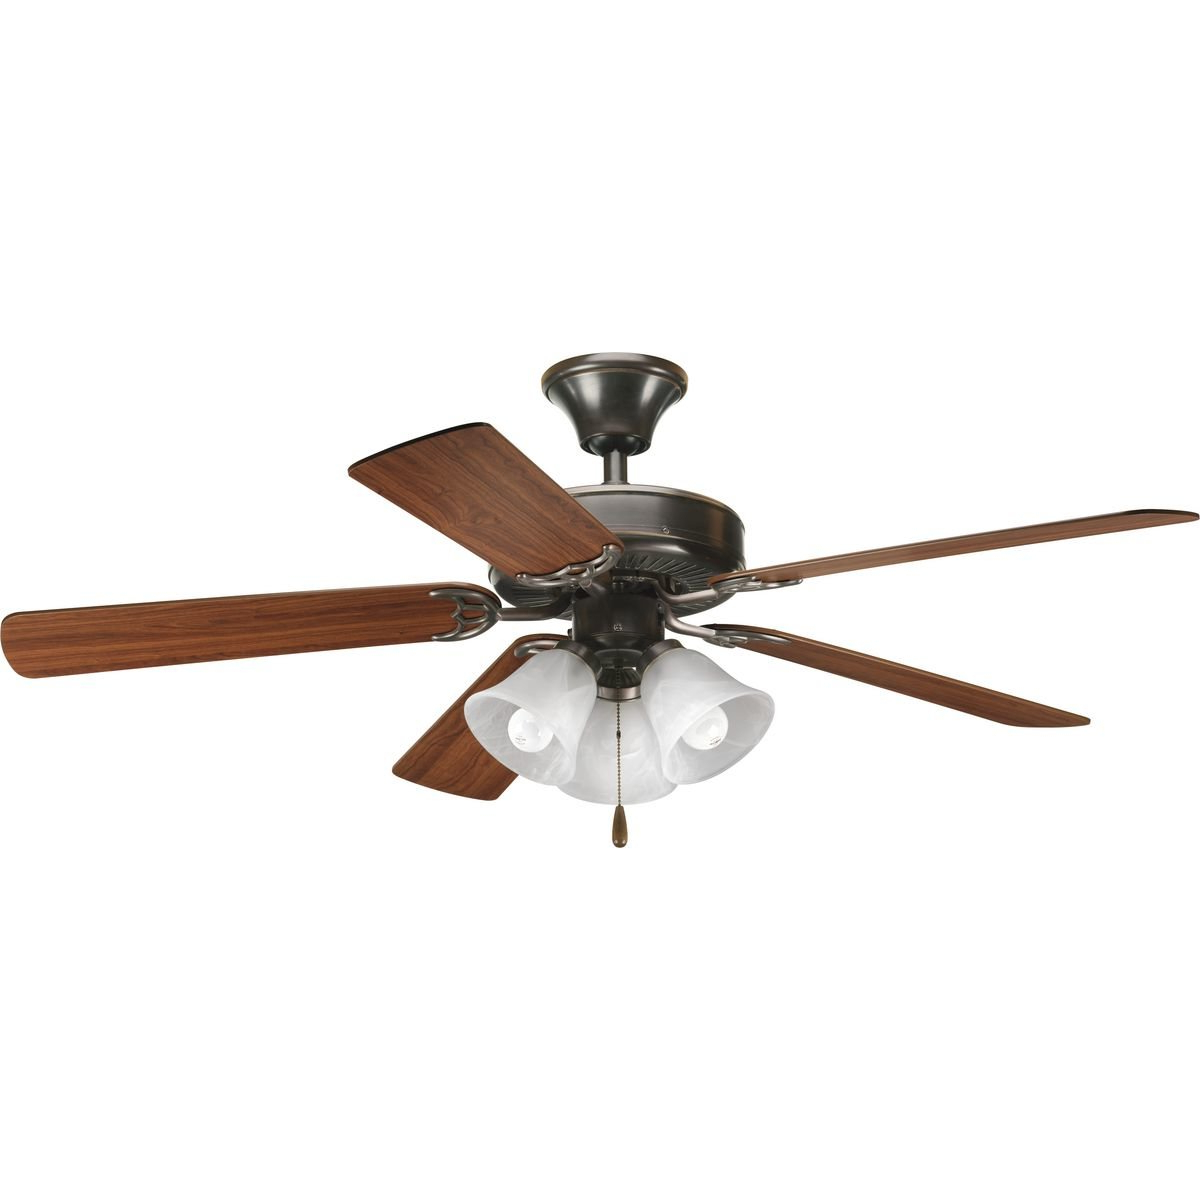 "52"" Henaghan 5 Blade Ceiling Fan With Regard To Latest Hemsworth 4 Blade Ceiling Fans (View 3 of 20)"